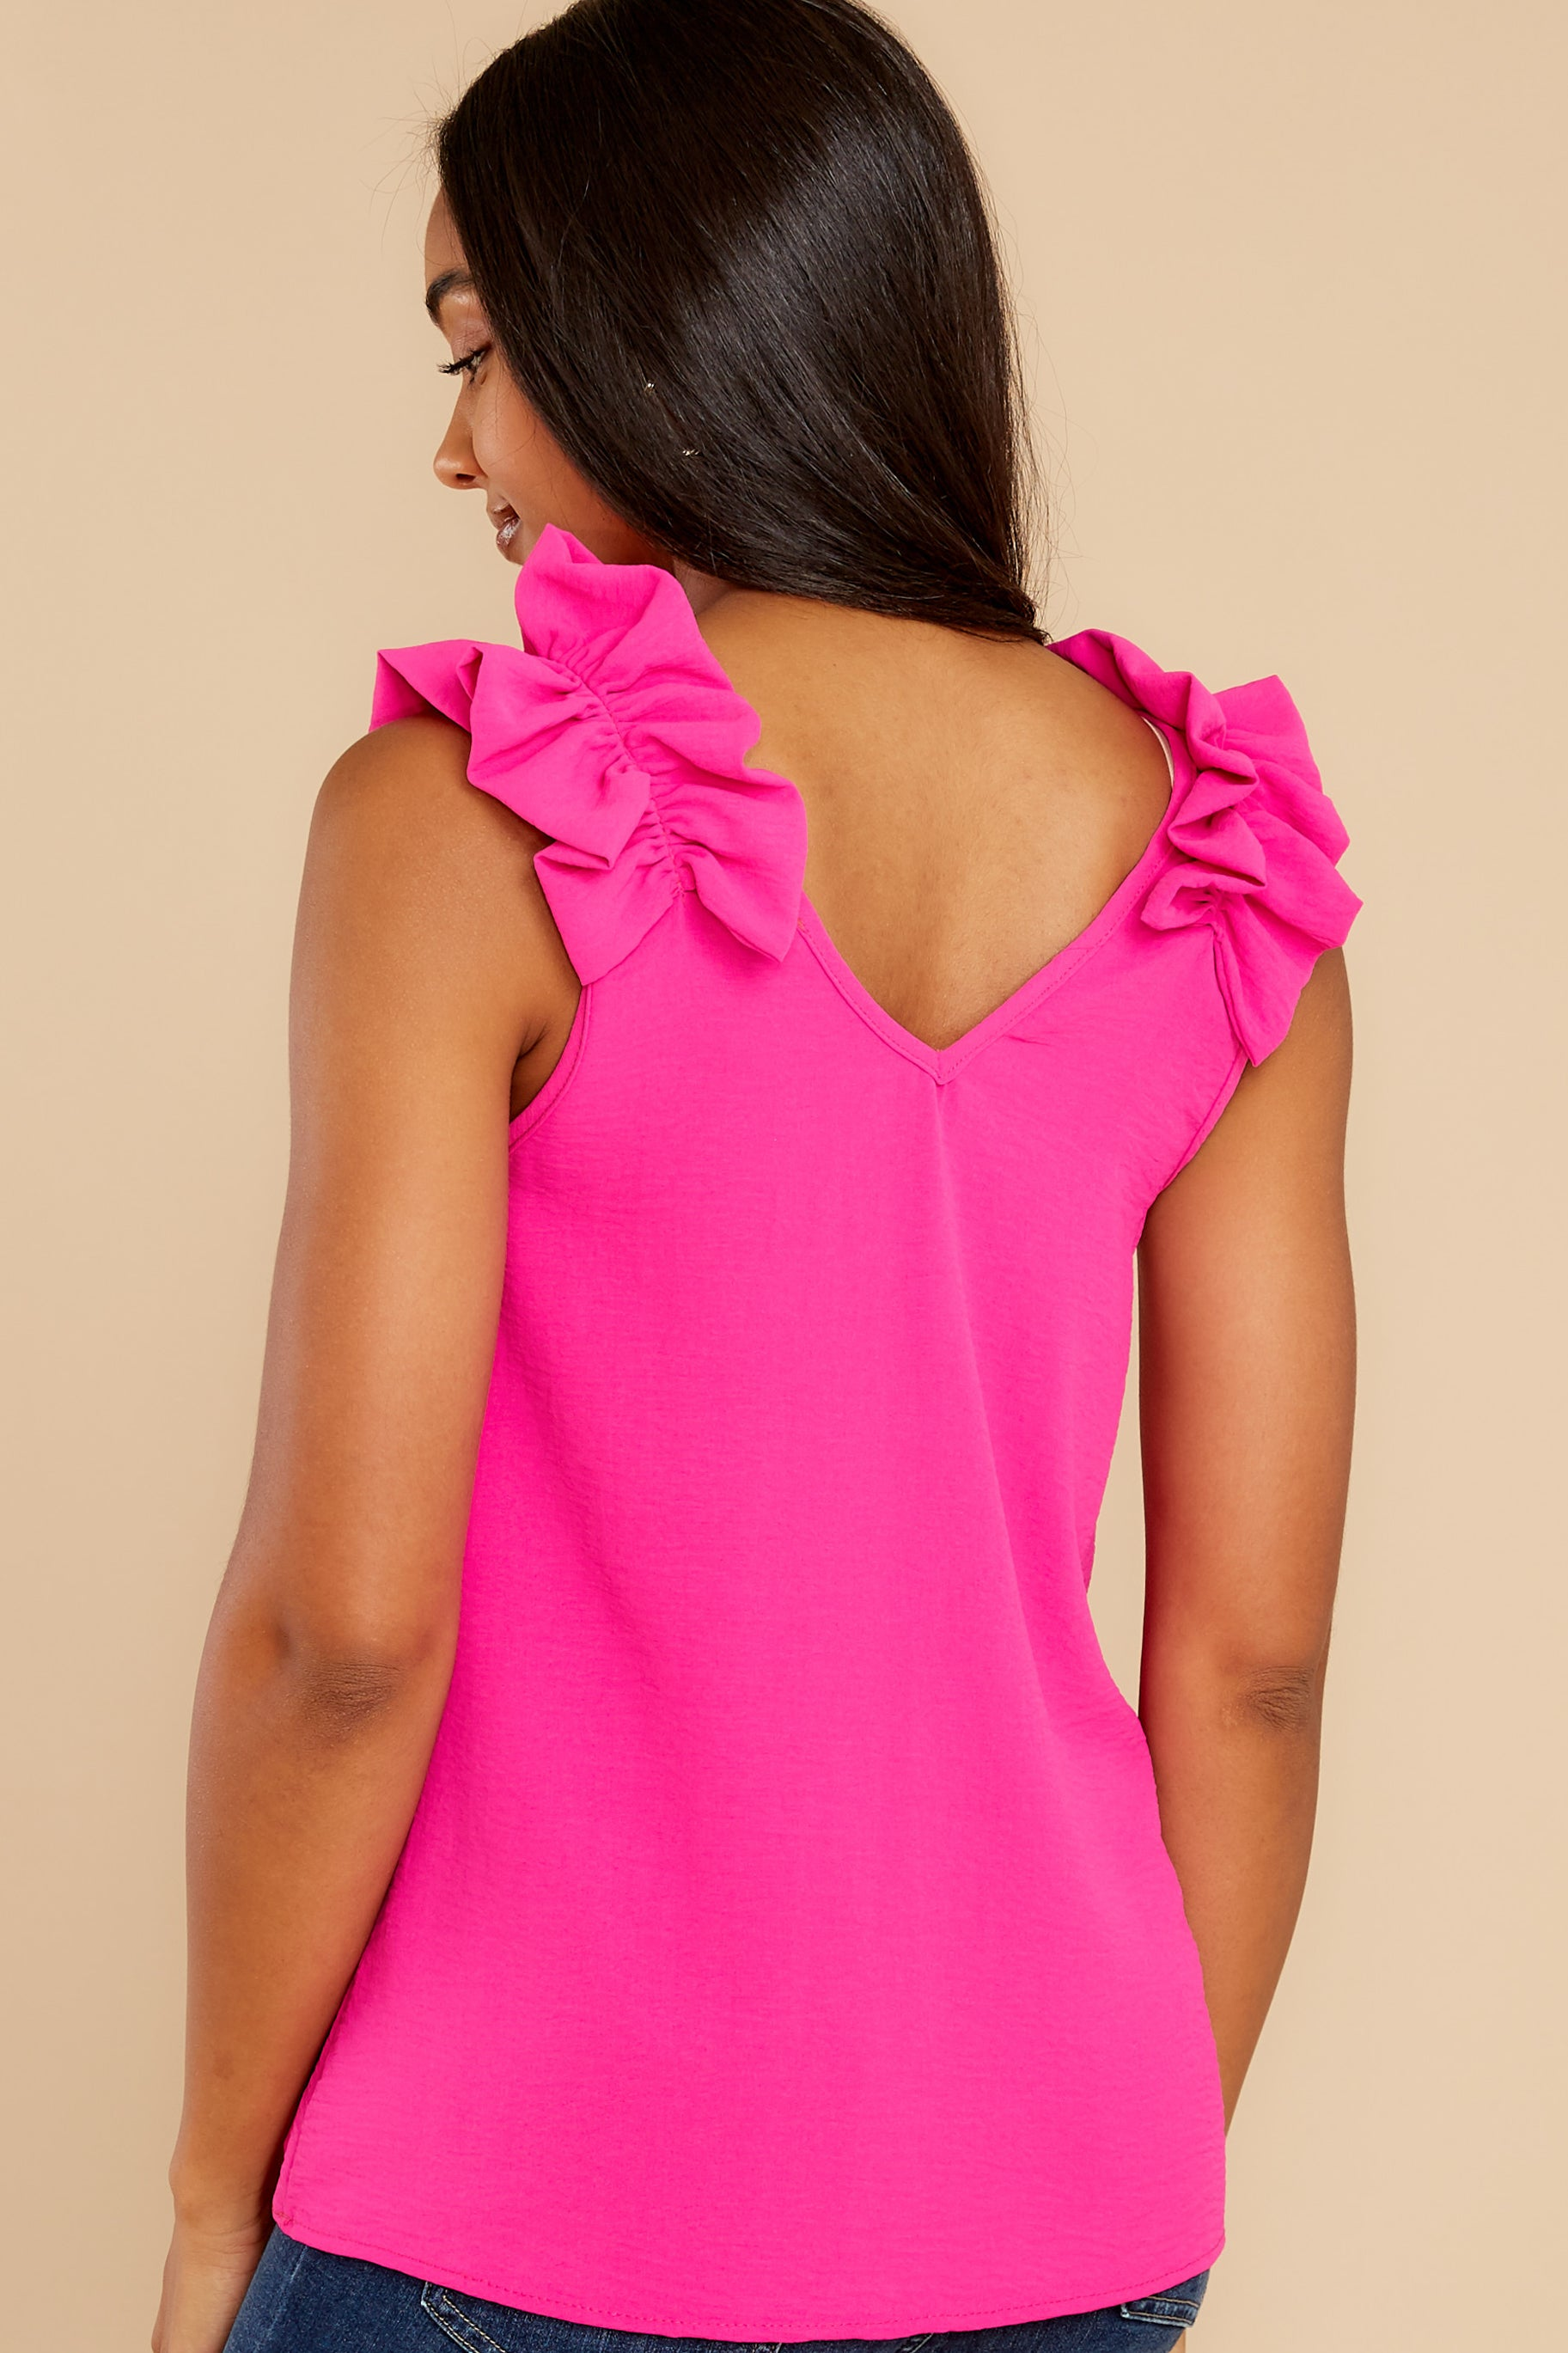 8 Game Ready Hot Pink Top at reddress.com